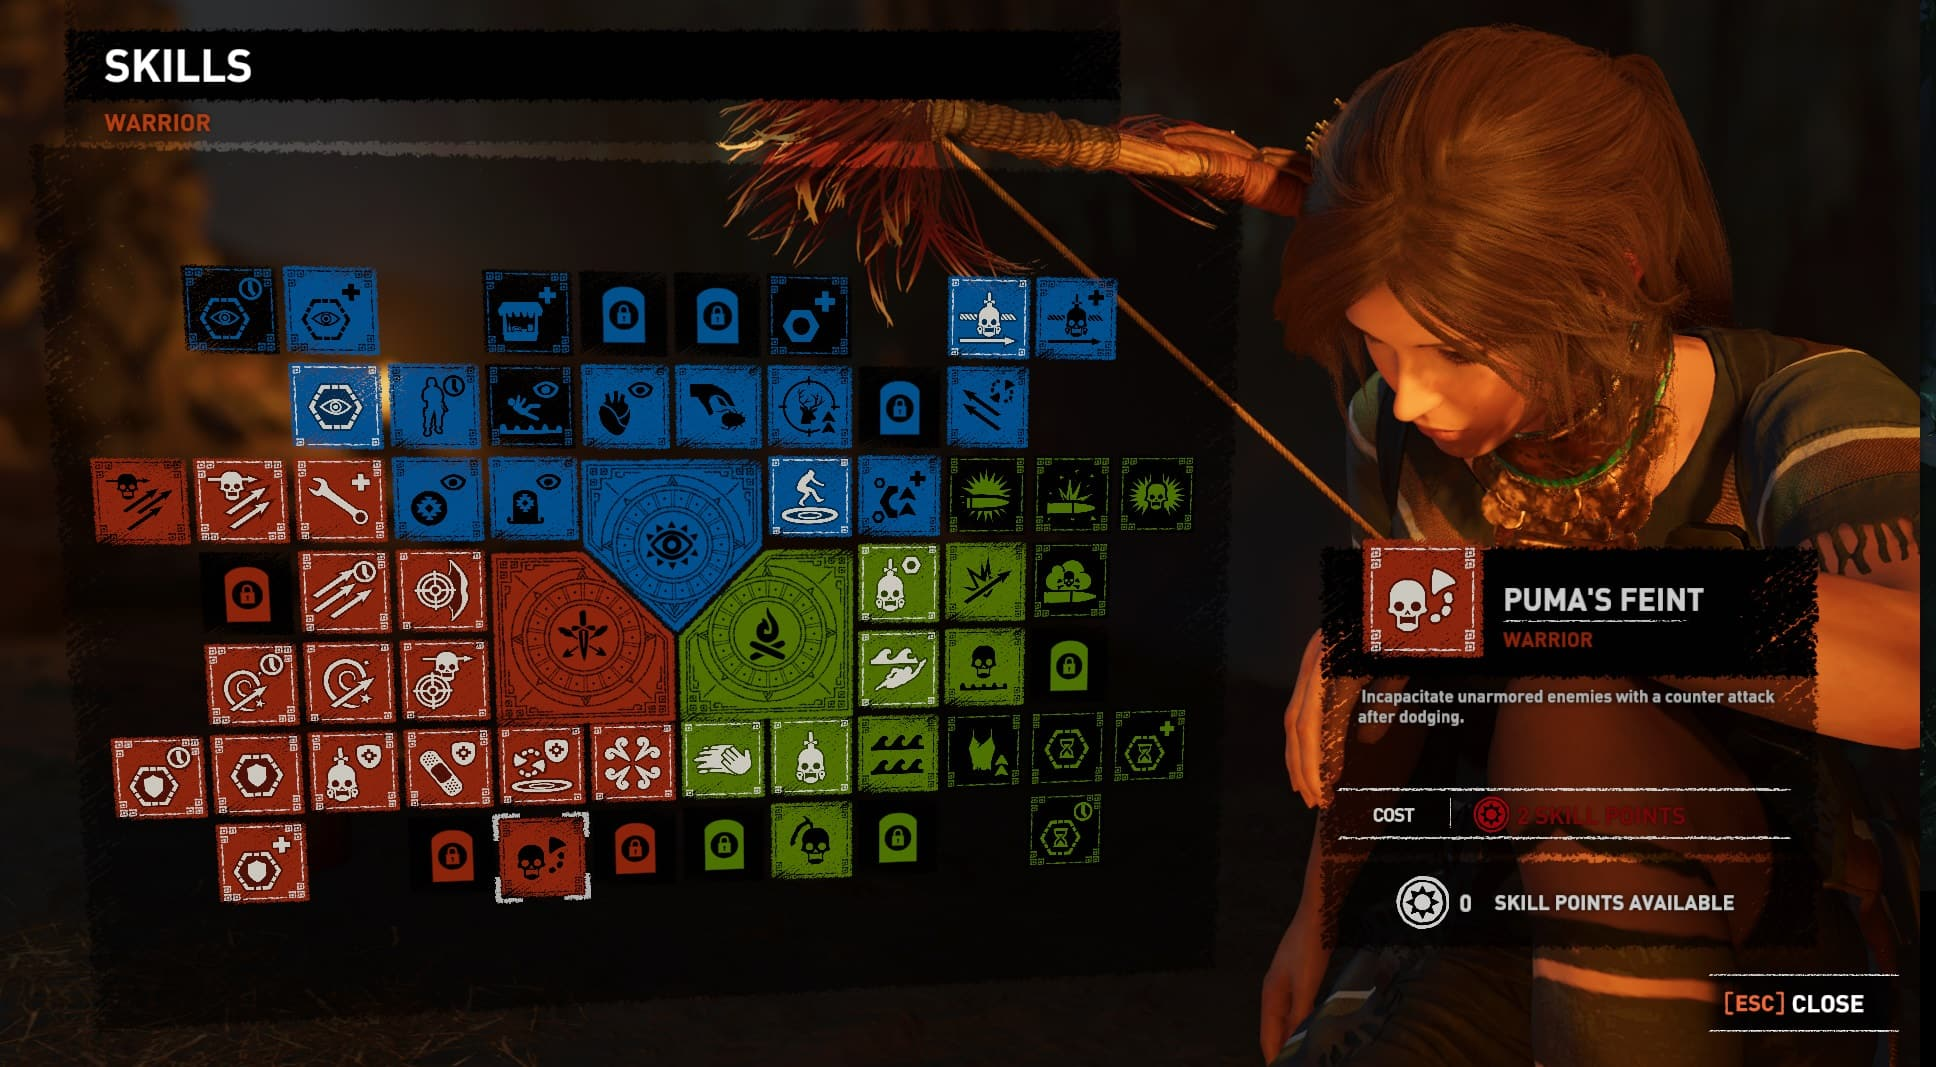 Shadow Of The Tomb Raider's ability upgrade system